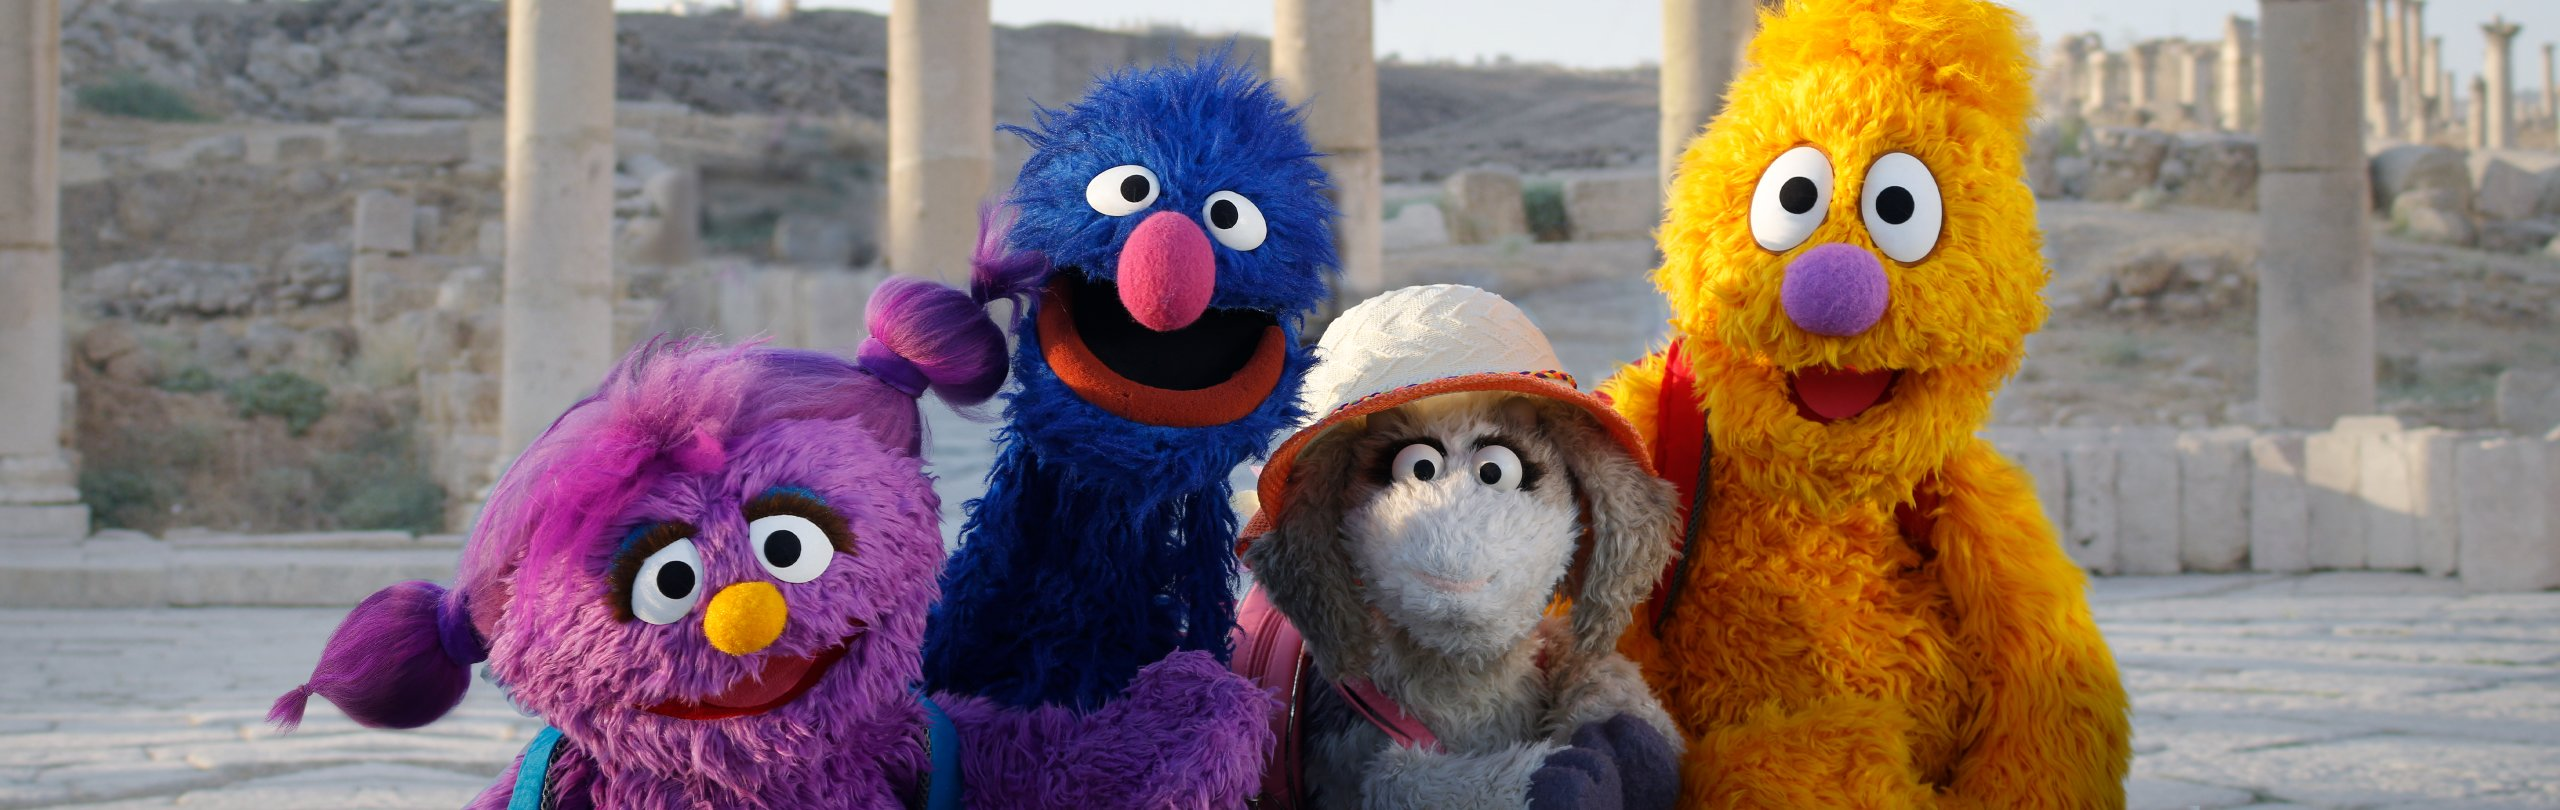 Basma, Grover, Ma'zooza, and Jad smile together outside